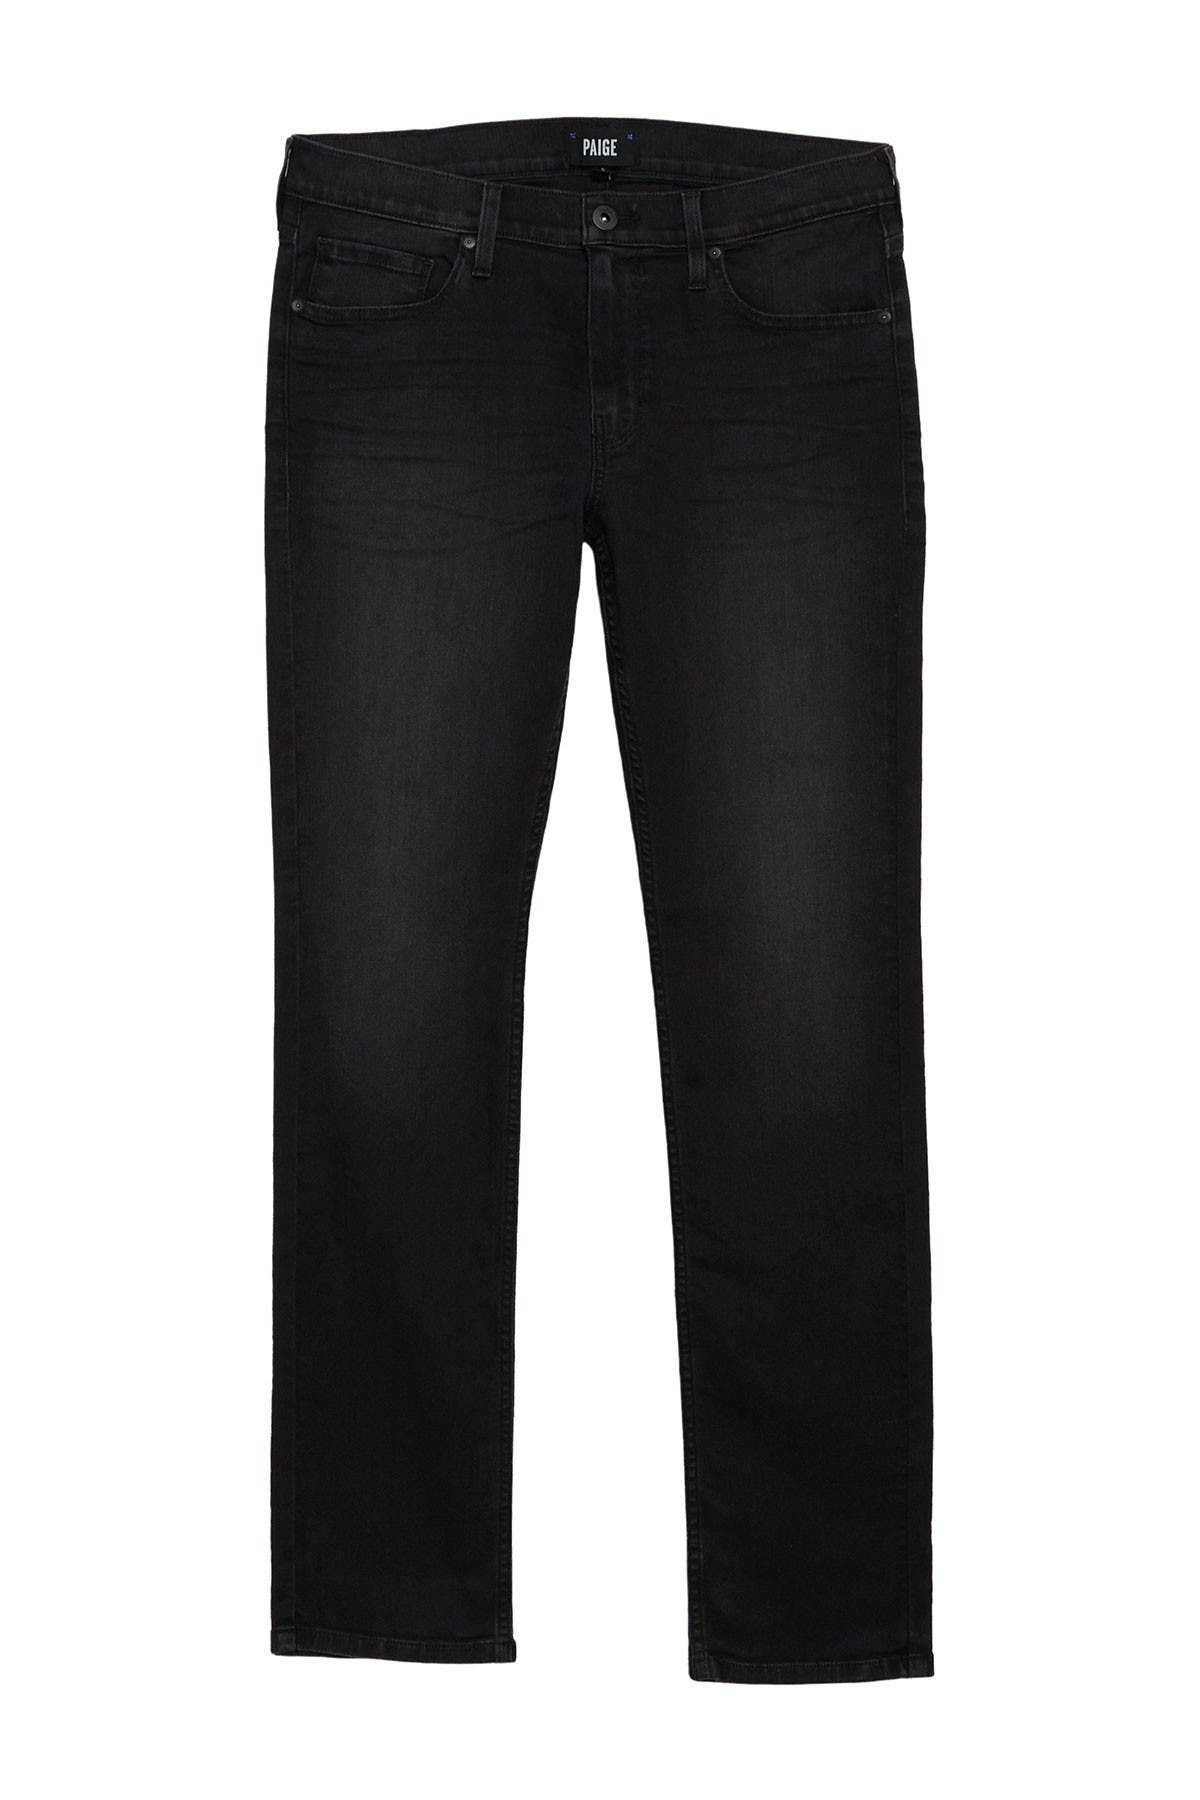 Image of PAIGE Lennox Slim Fit Jeans